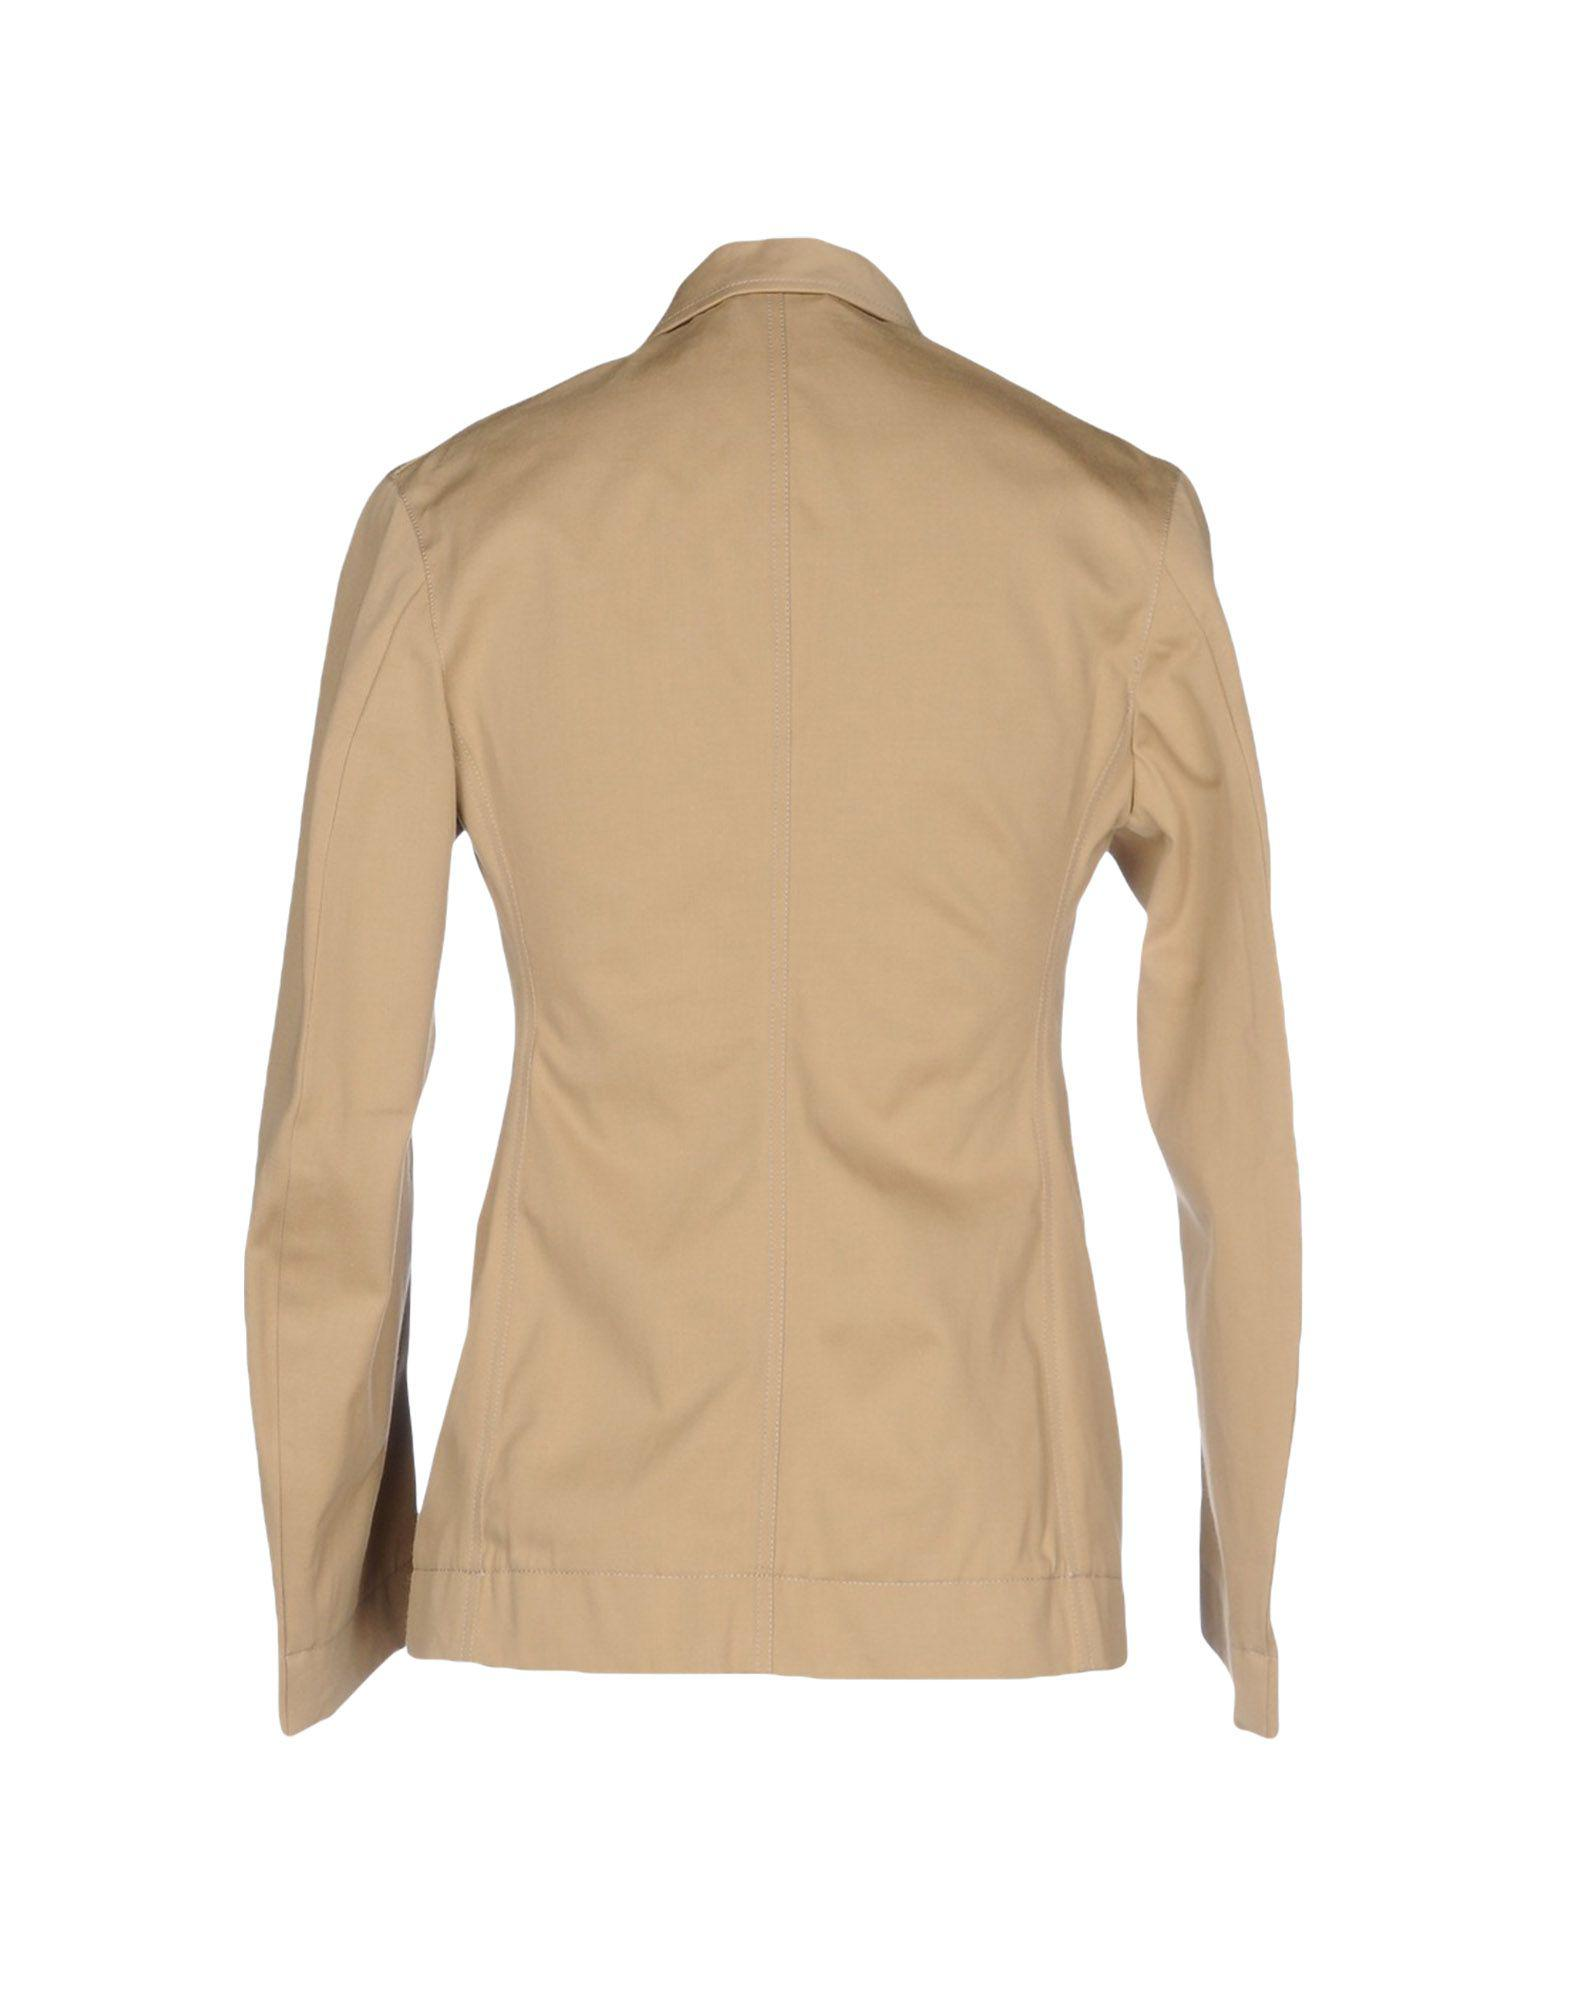 E. Tautz Cotton Jacket in Beige (Natural) for Men